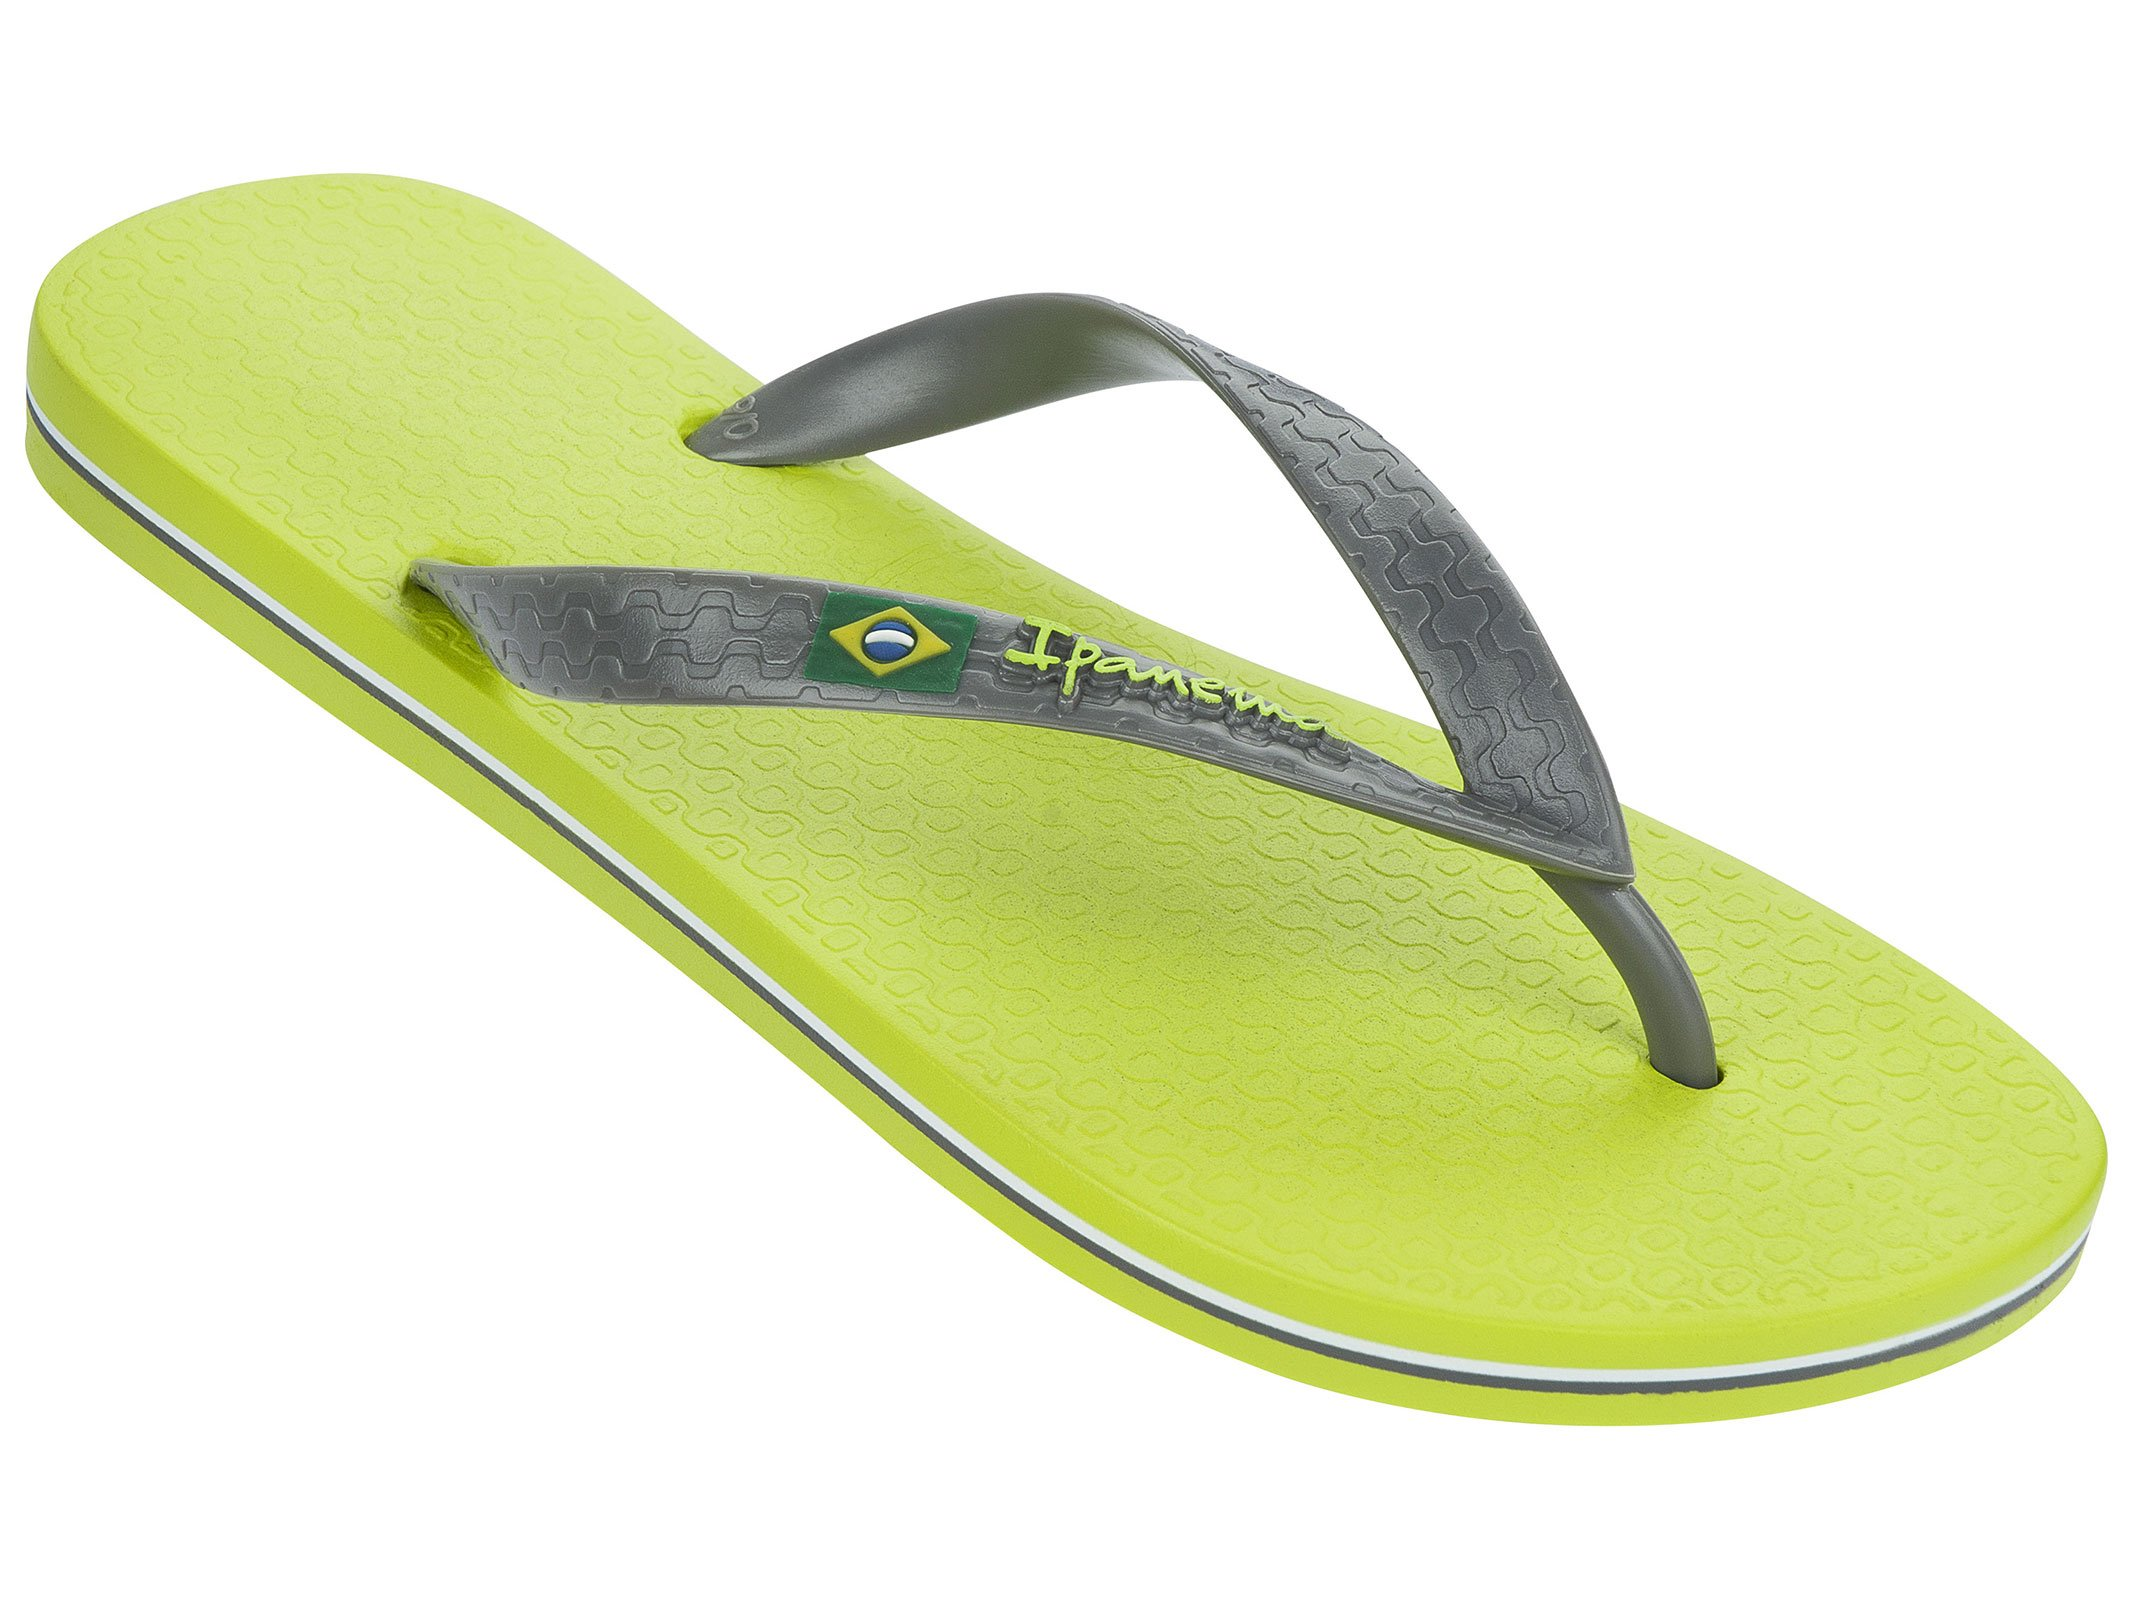 Light Green And Grey Strapped Two-coloured Ipanema Flip-flops - Classica - Green/grey